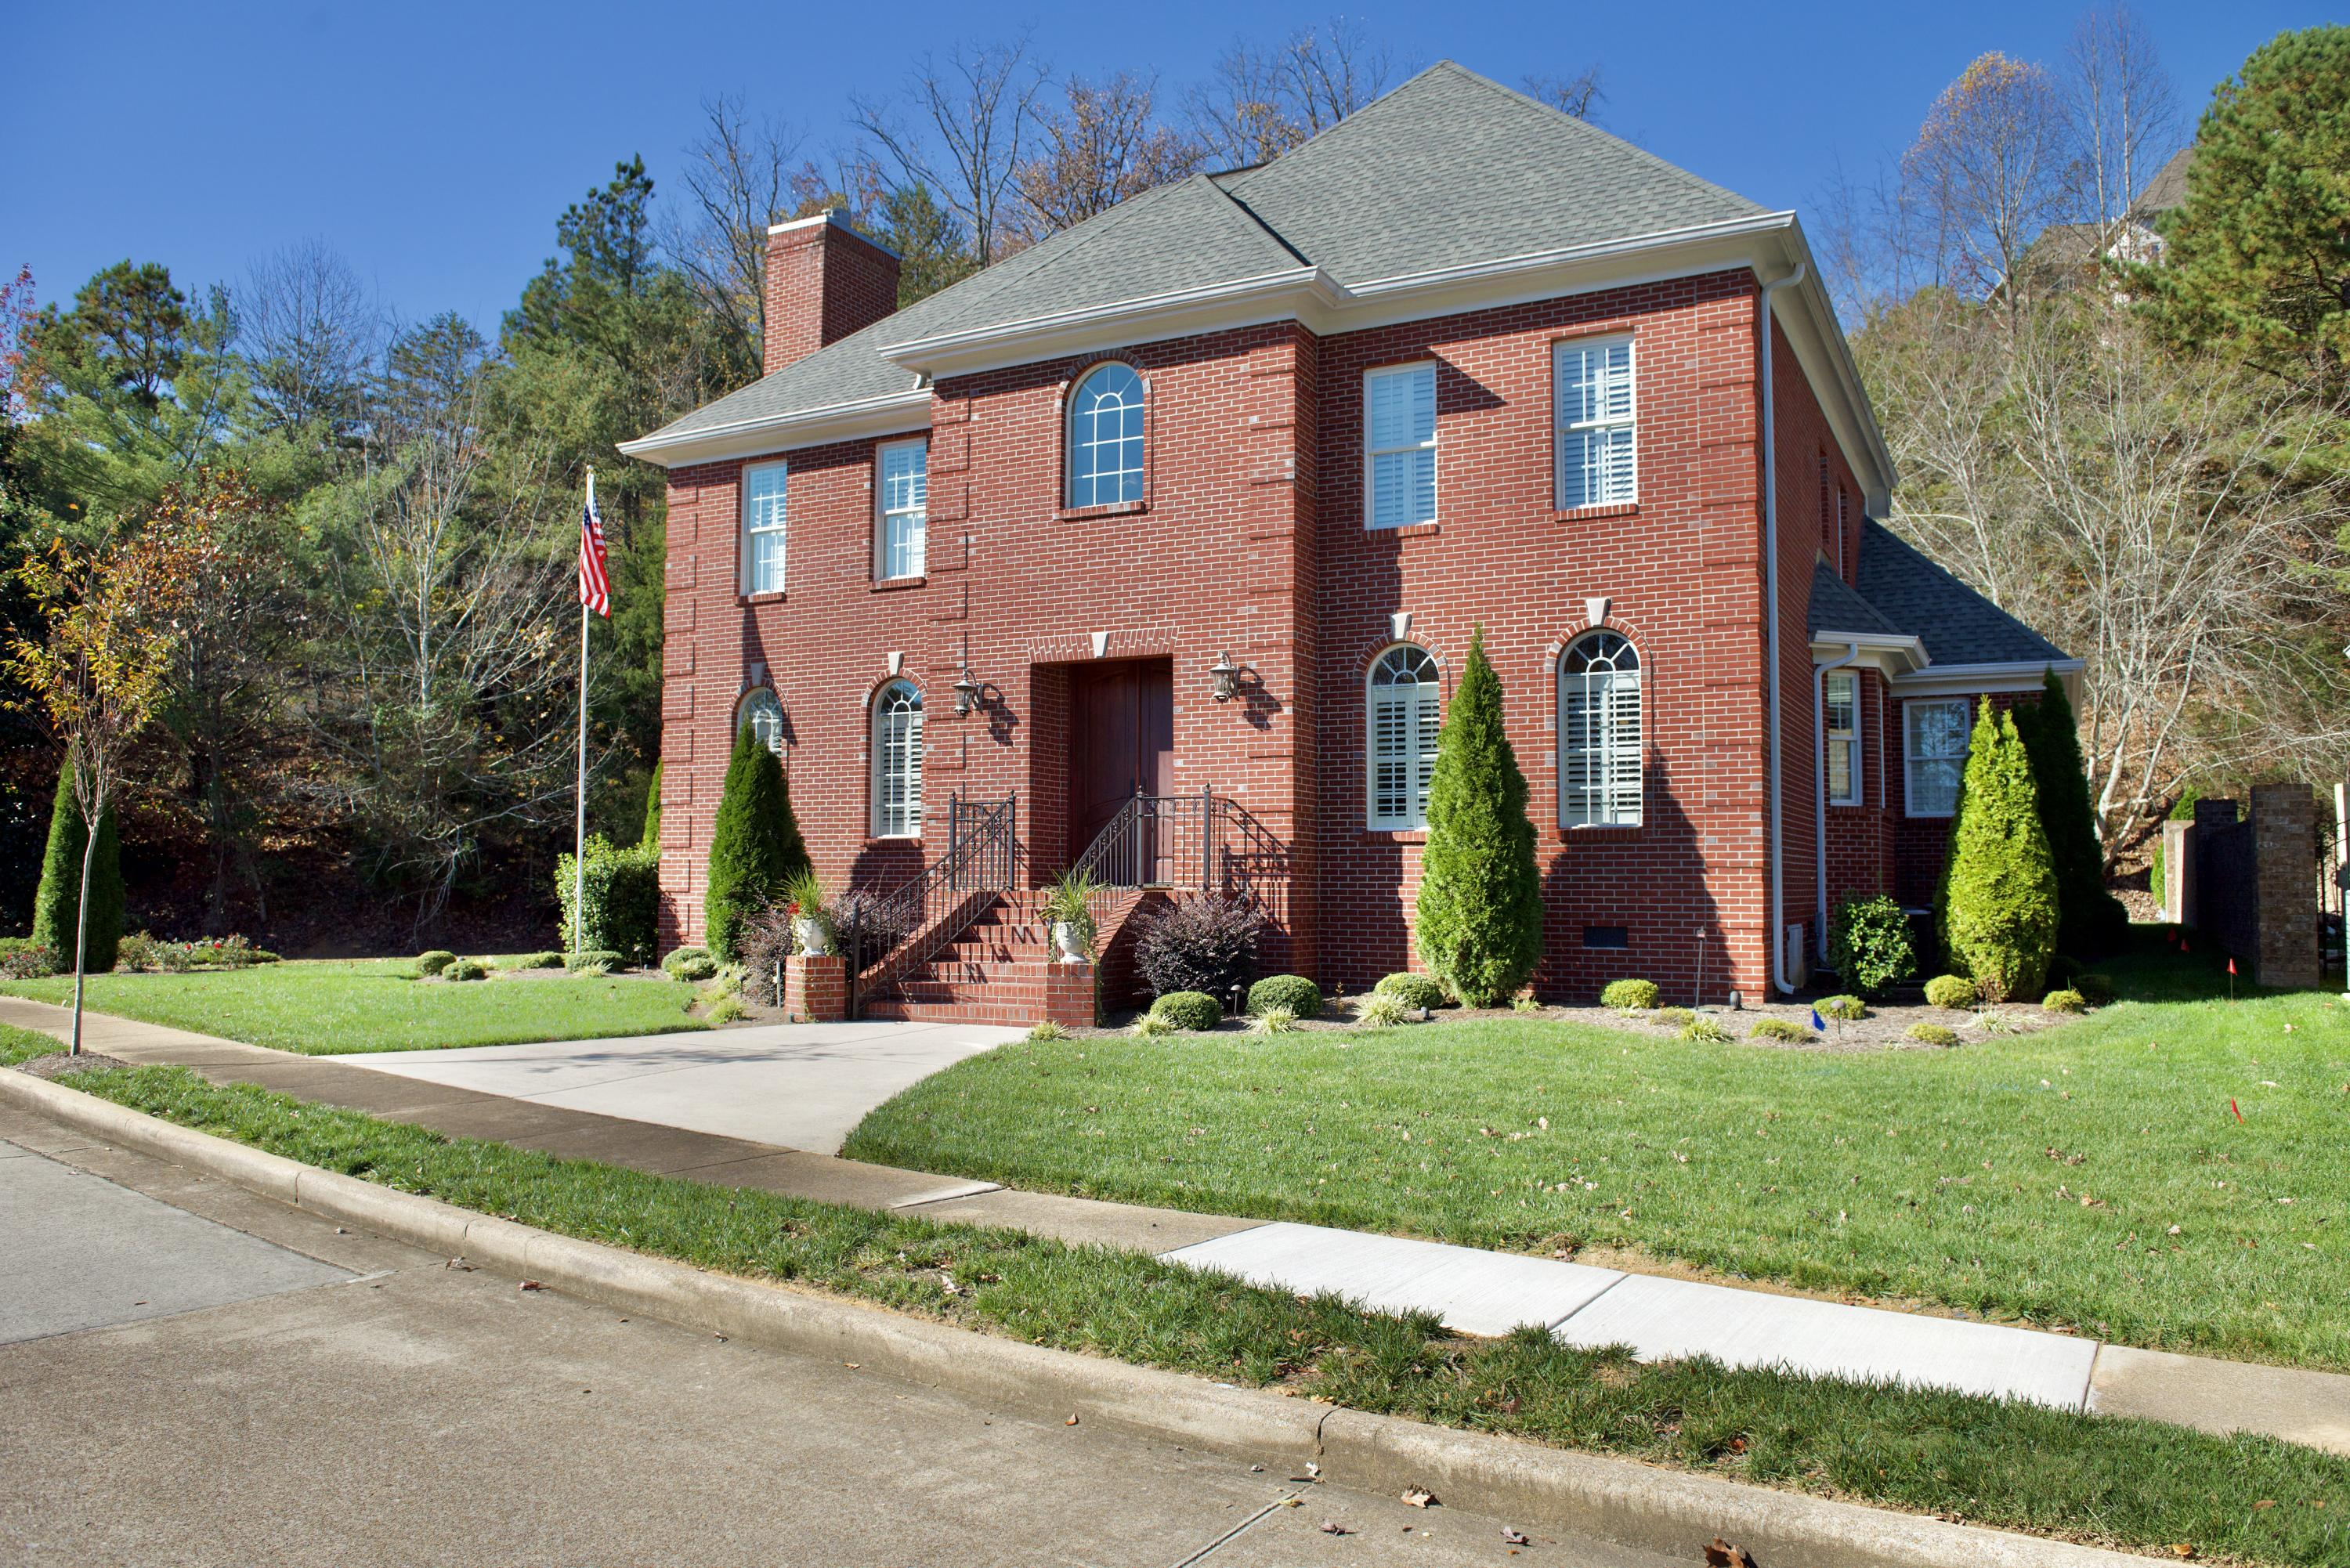 531 Nw Stafford Ave, Cleveland, TN 37312